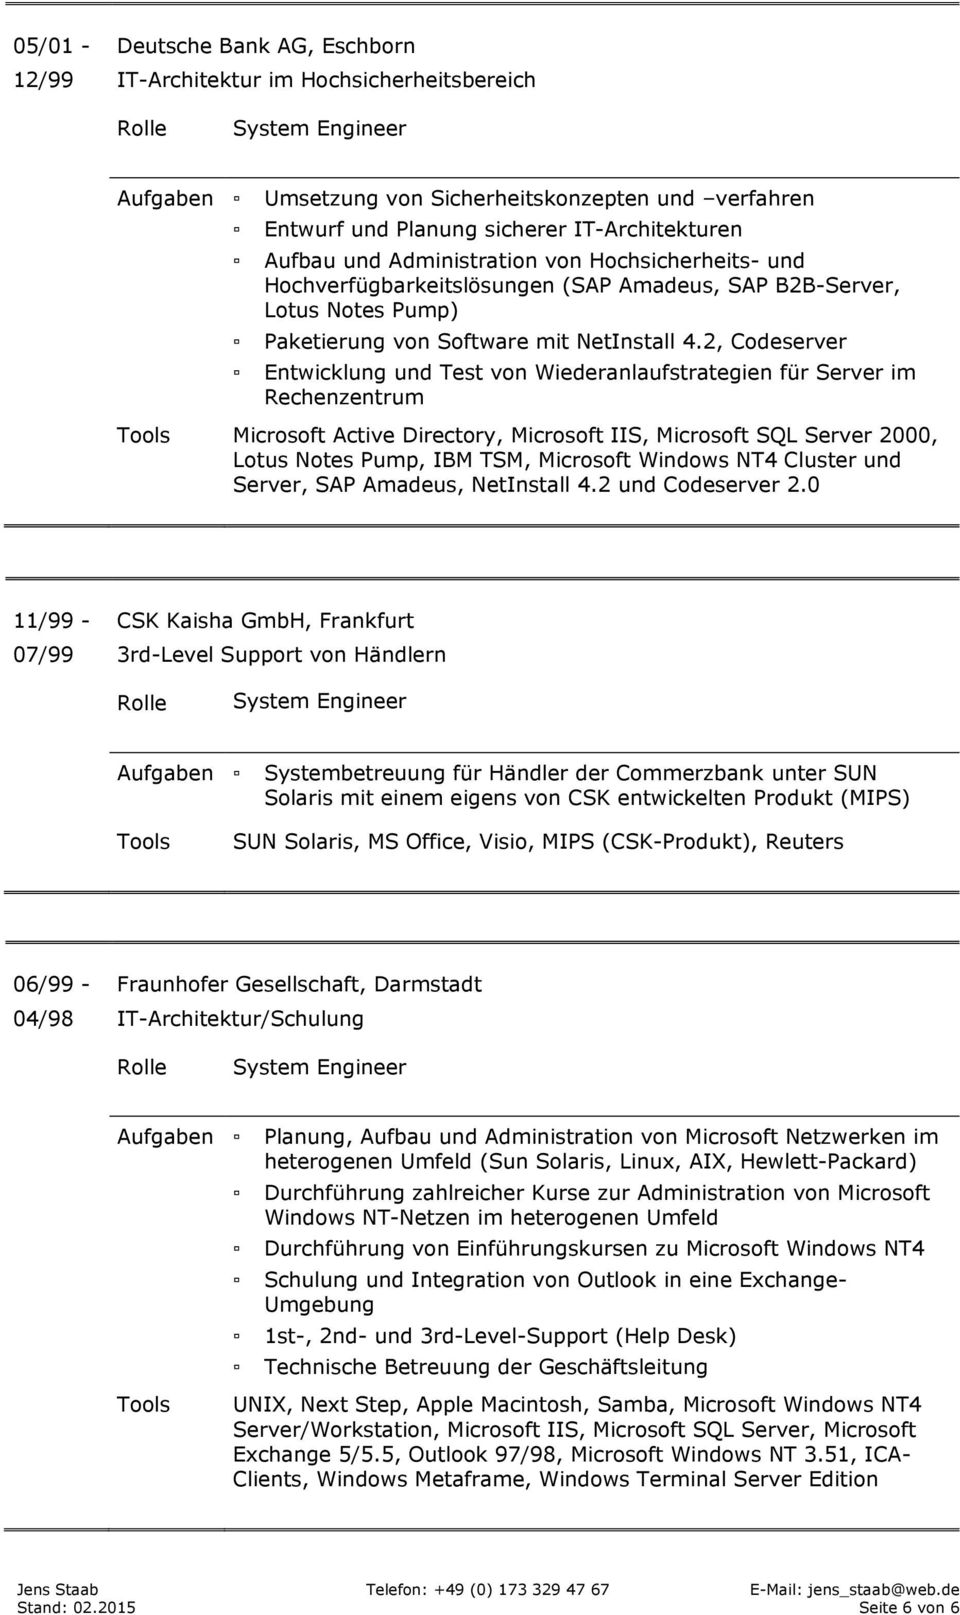 2, Codeserver Entwicklung und Test von Wiederanlaufstrategien für Server im Rechenzentrum Microsoft Active Directory, Microsoft IIS, Microsoft SQL Server 2000, Lotus Notes Pump, IBM TSM, Microsoft